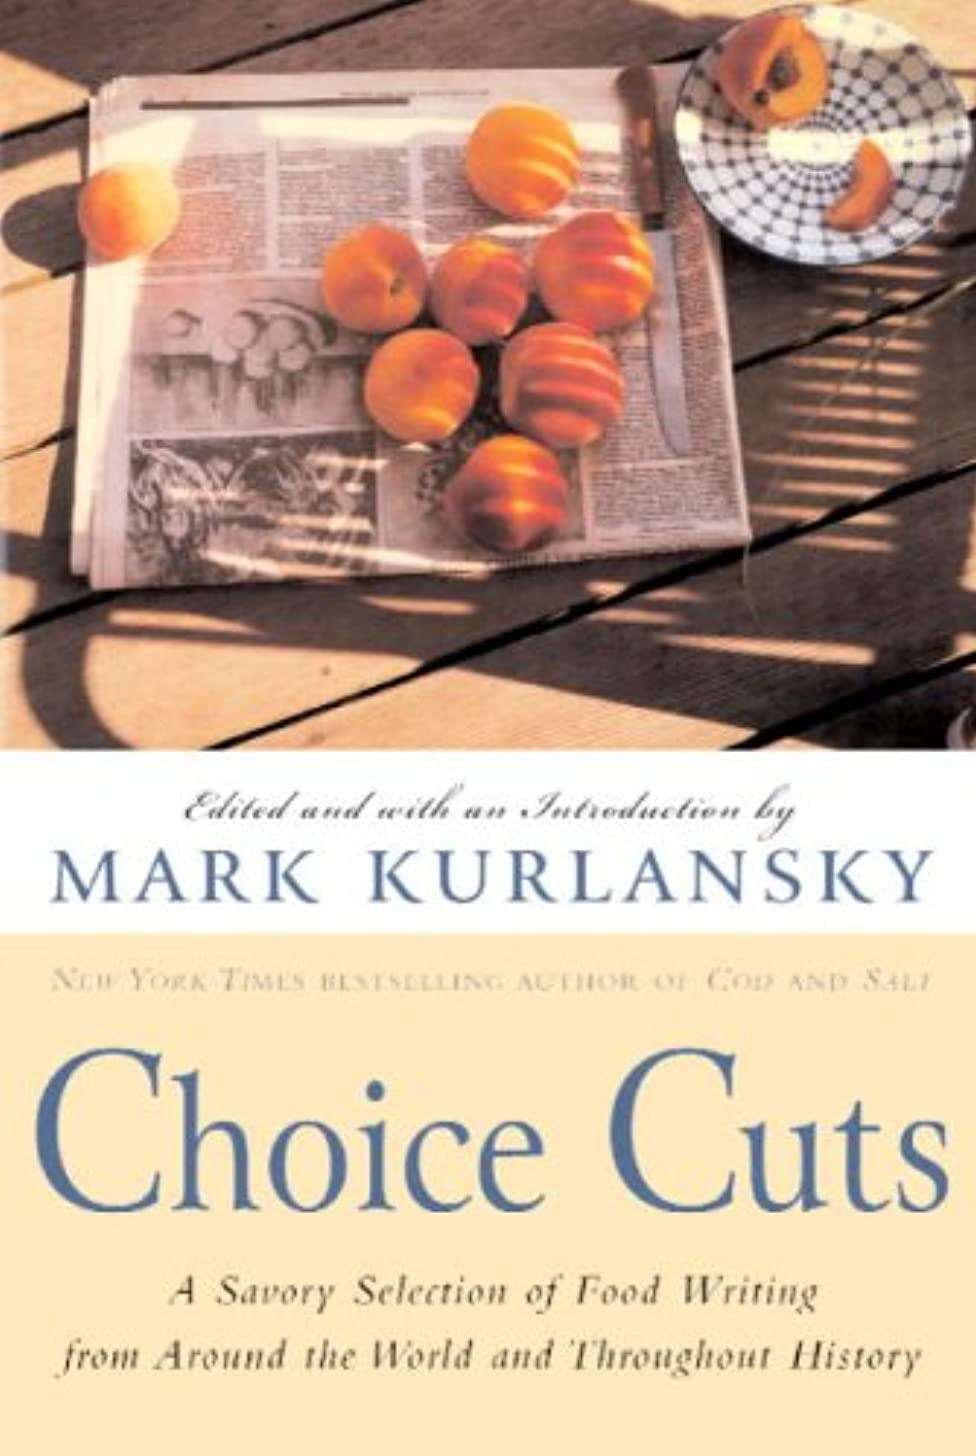 季節叫ぶ公使館Choice Cuts: A Savory Selection of Food Writing from Around the World and Throughout History (English Edition)